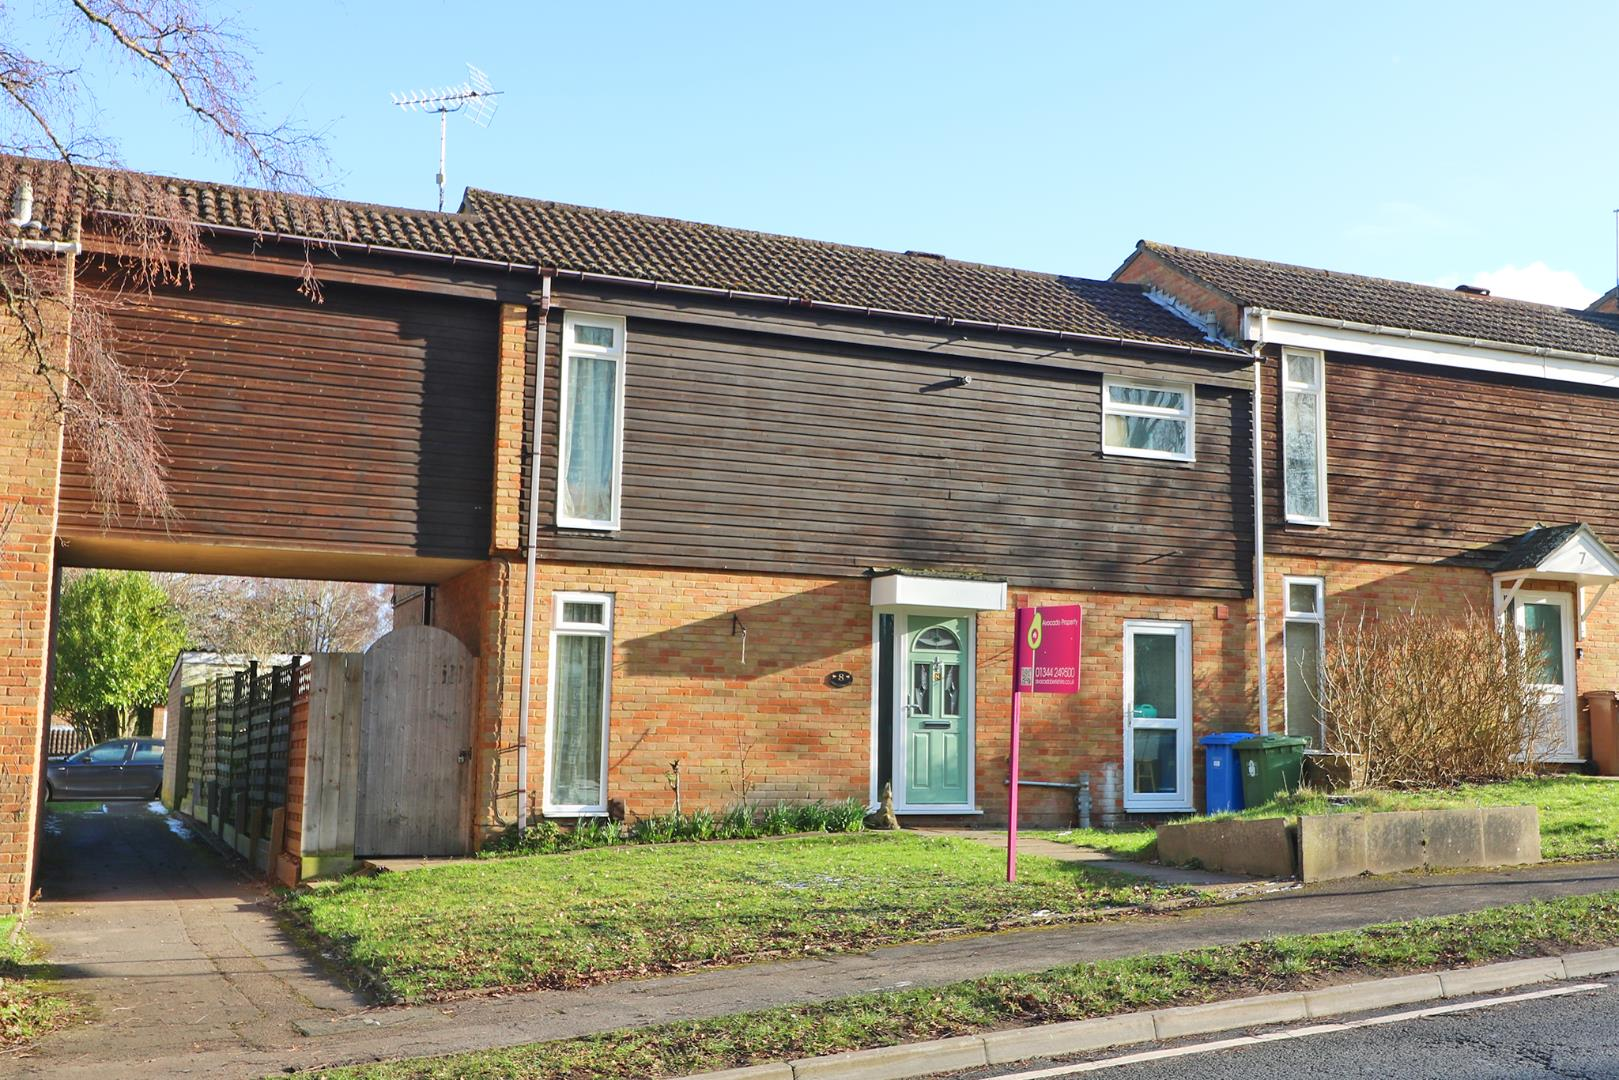 4 bed terraced for sale in Hanworth 1